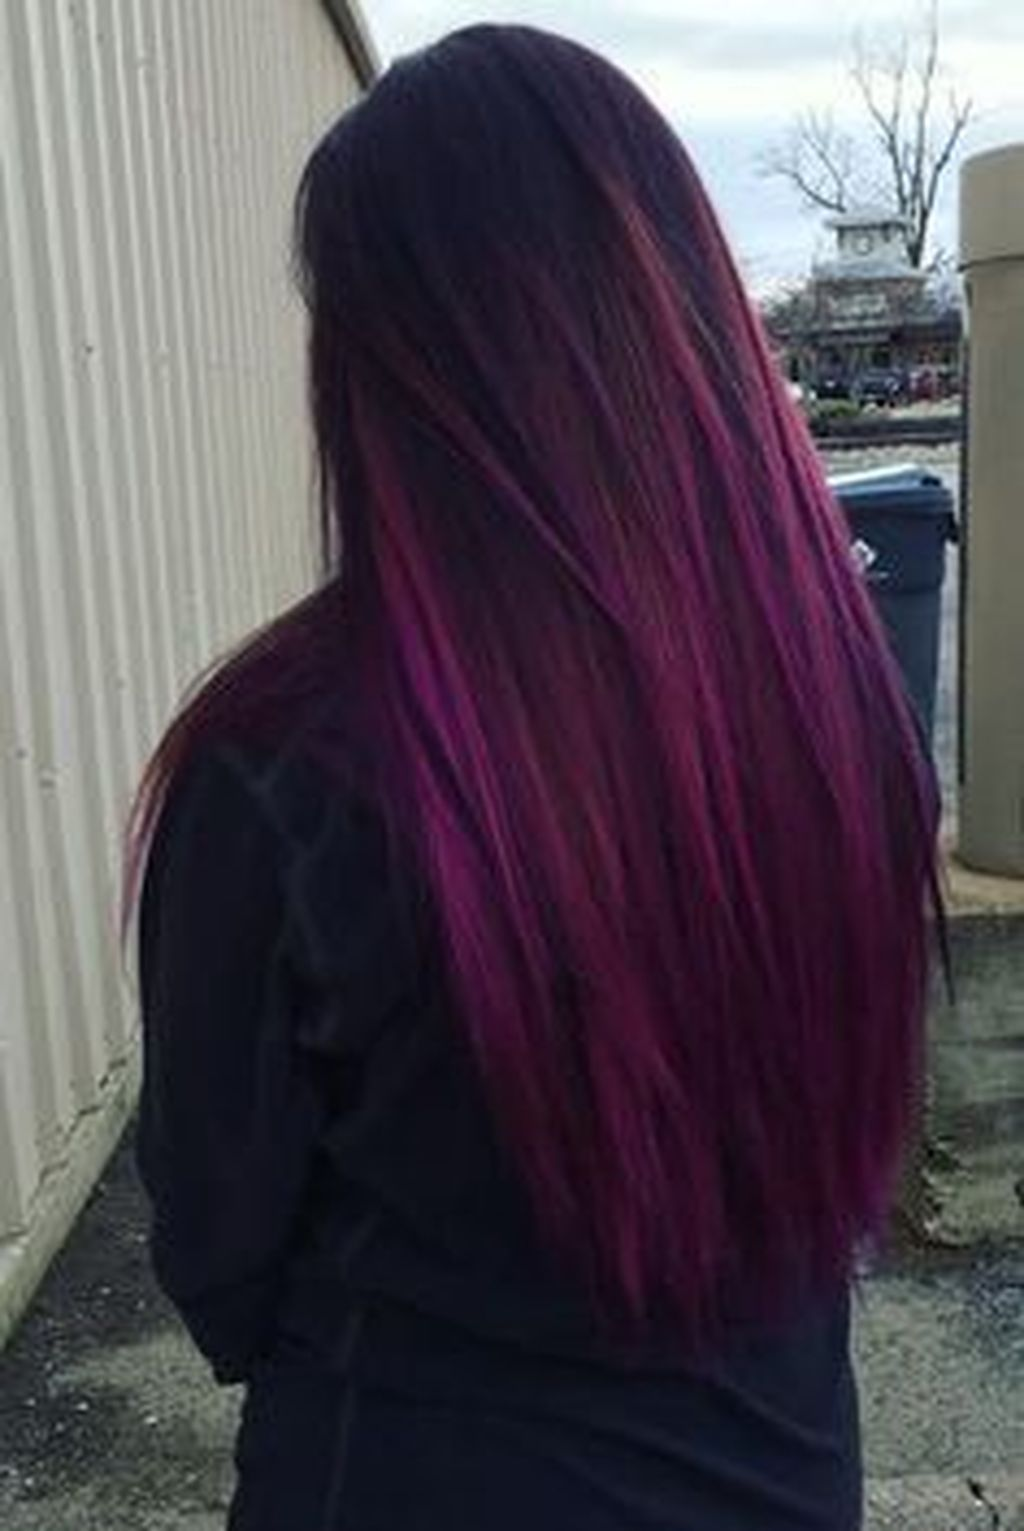 Inspiring Bold Ombre Hair Colors Ideas Trend   Ombre hair